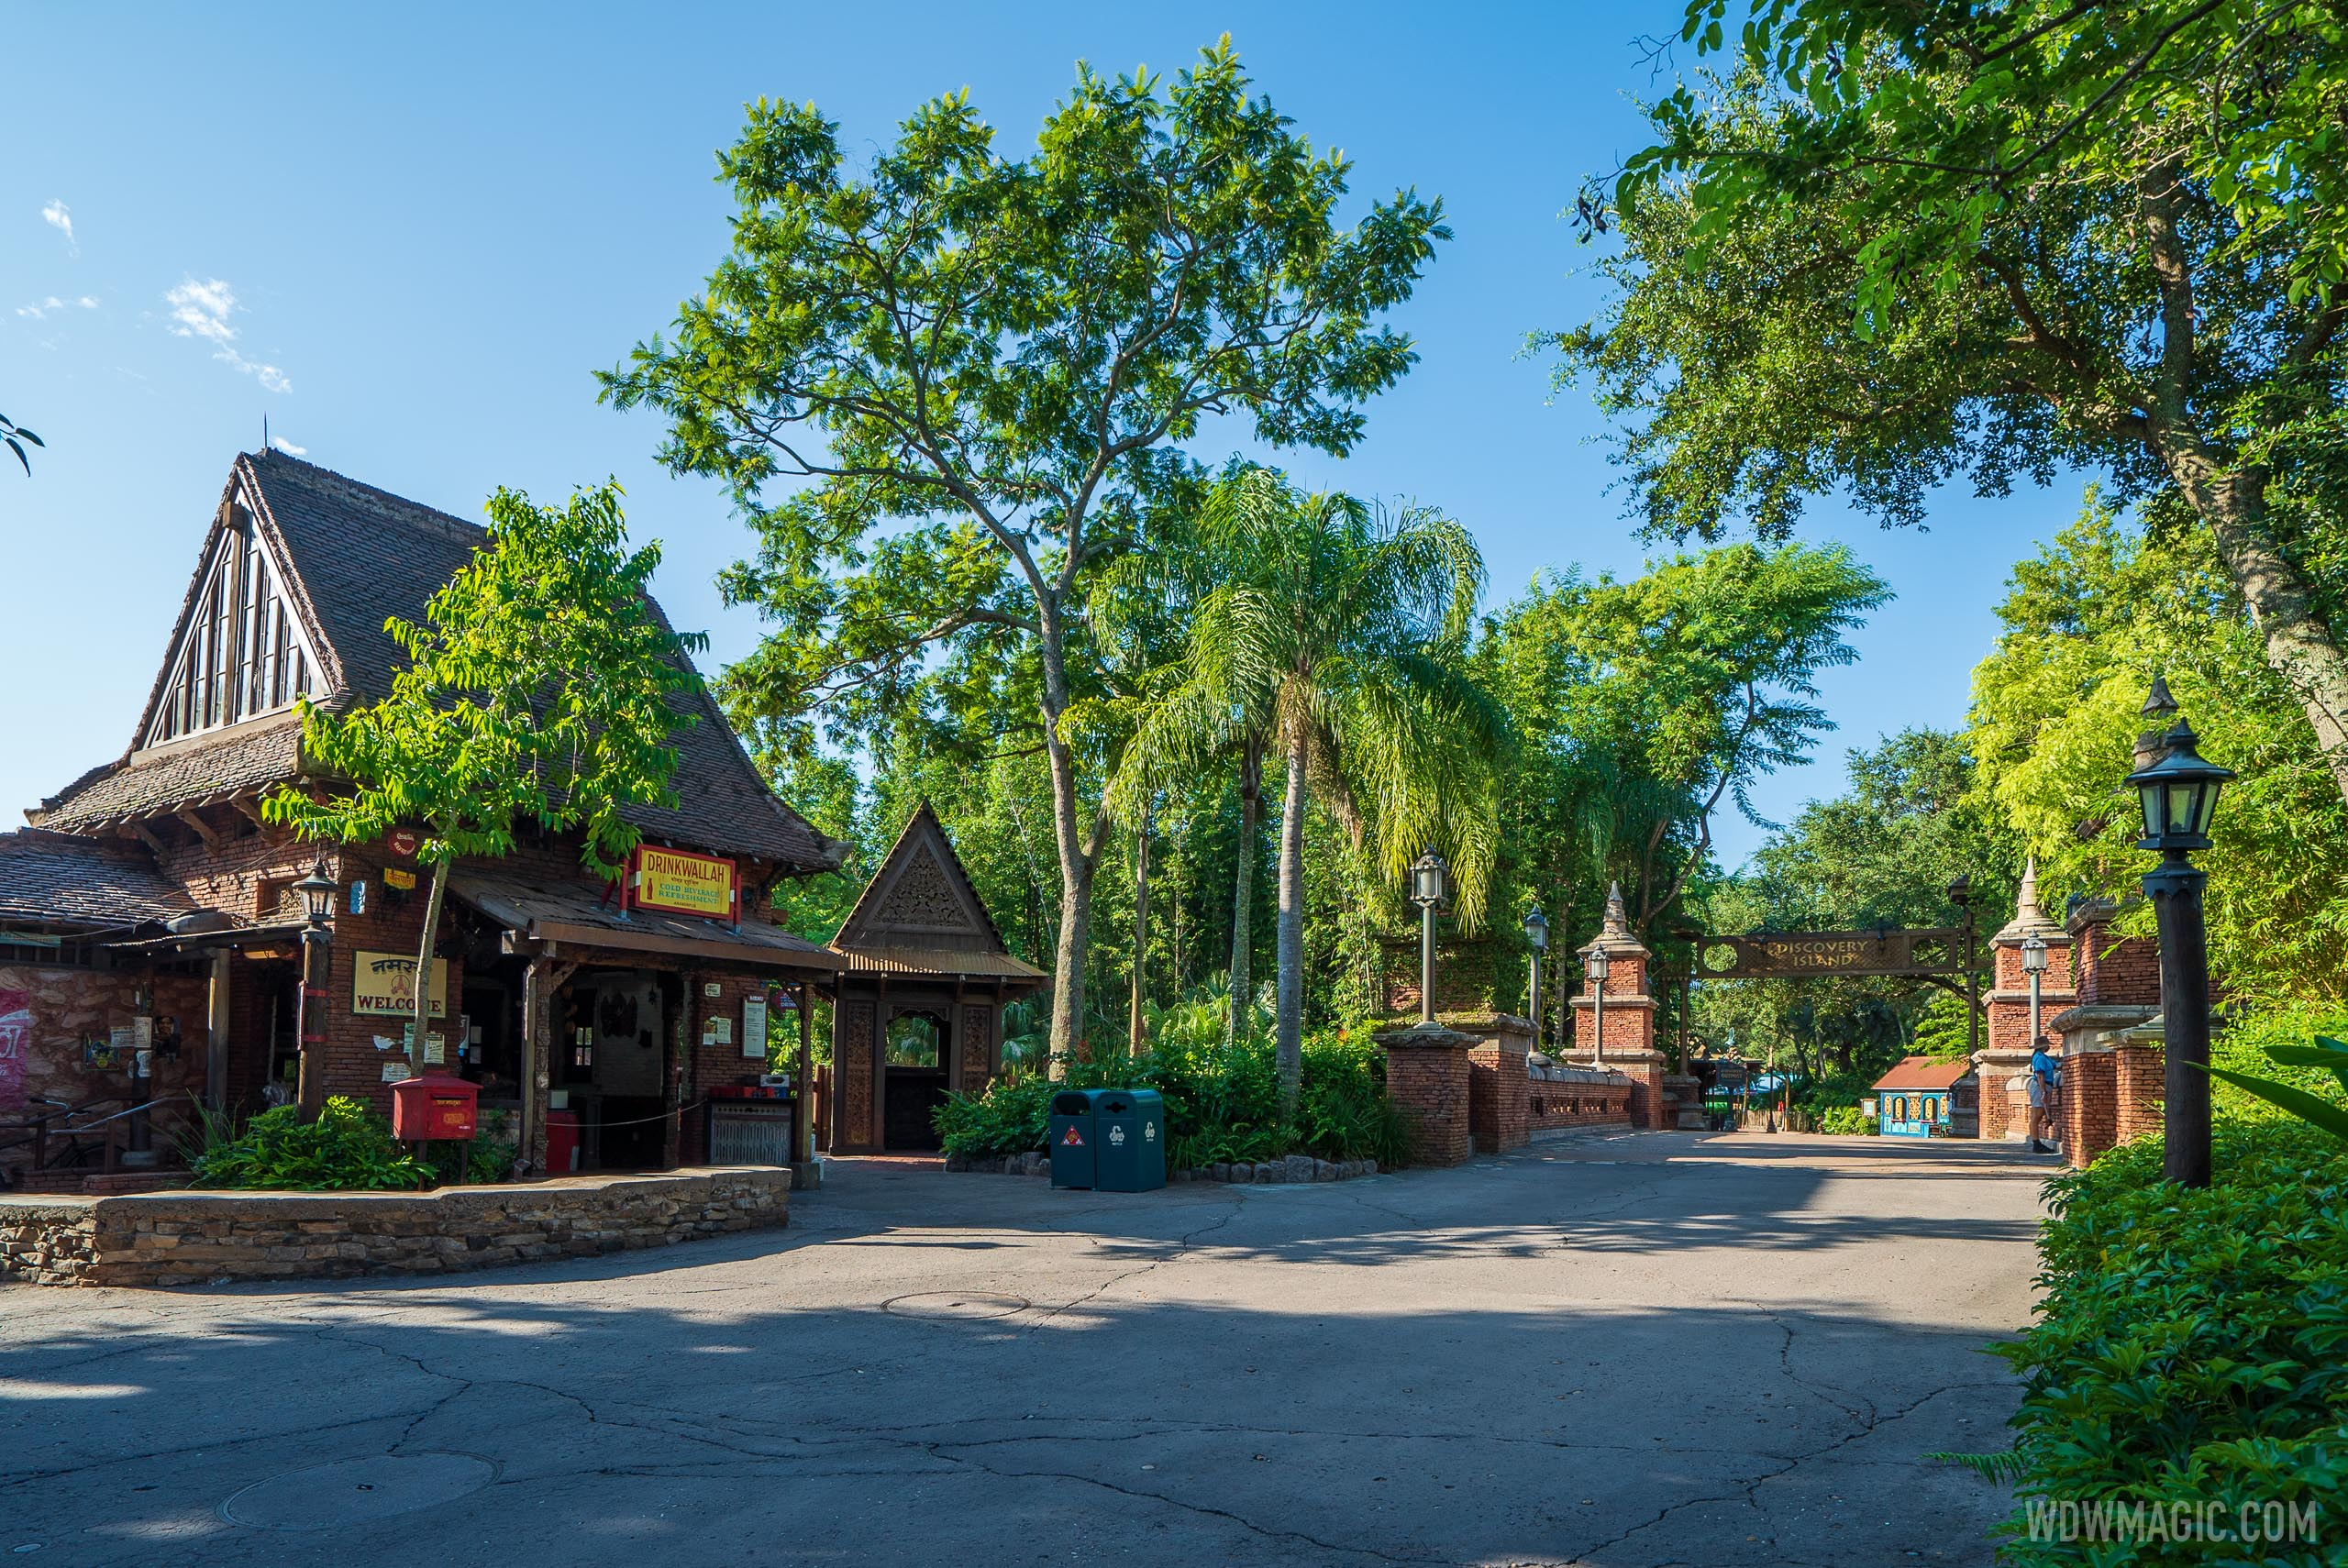 Since reopening in mid-July, Walt Disney World theme parks require a Disney Parks Pass reservation in addition to a ticket